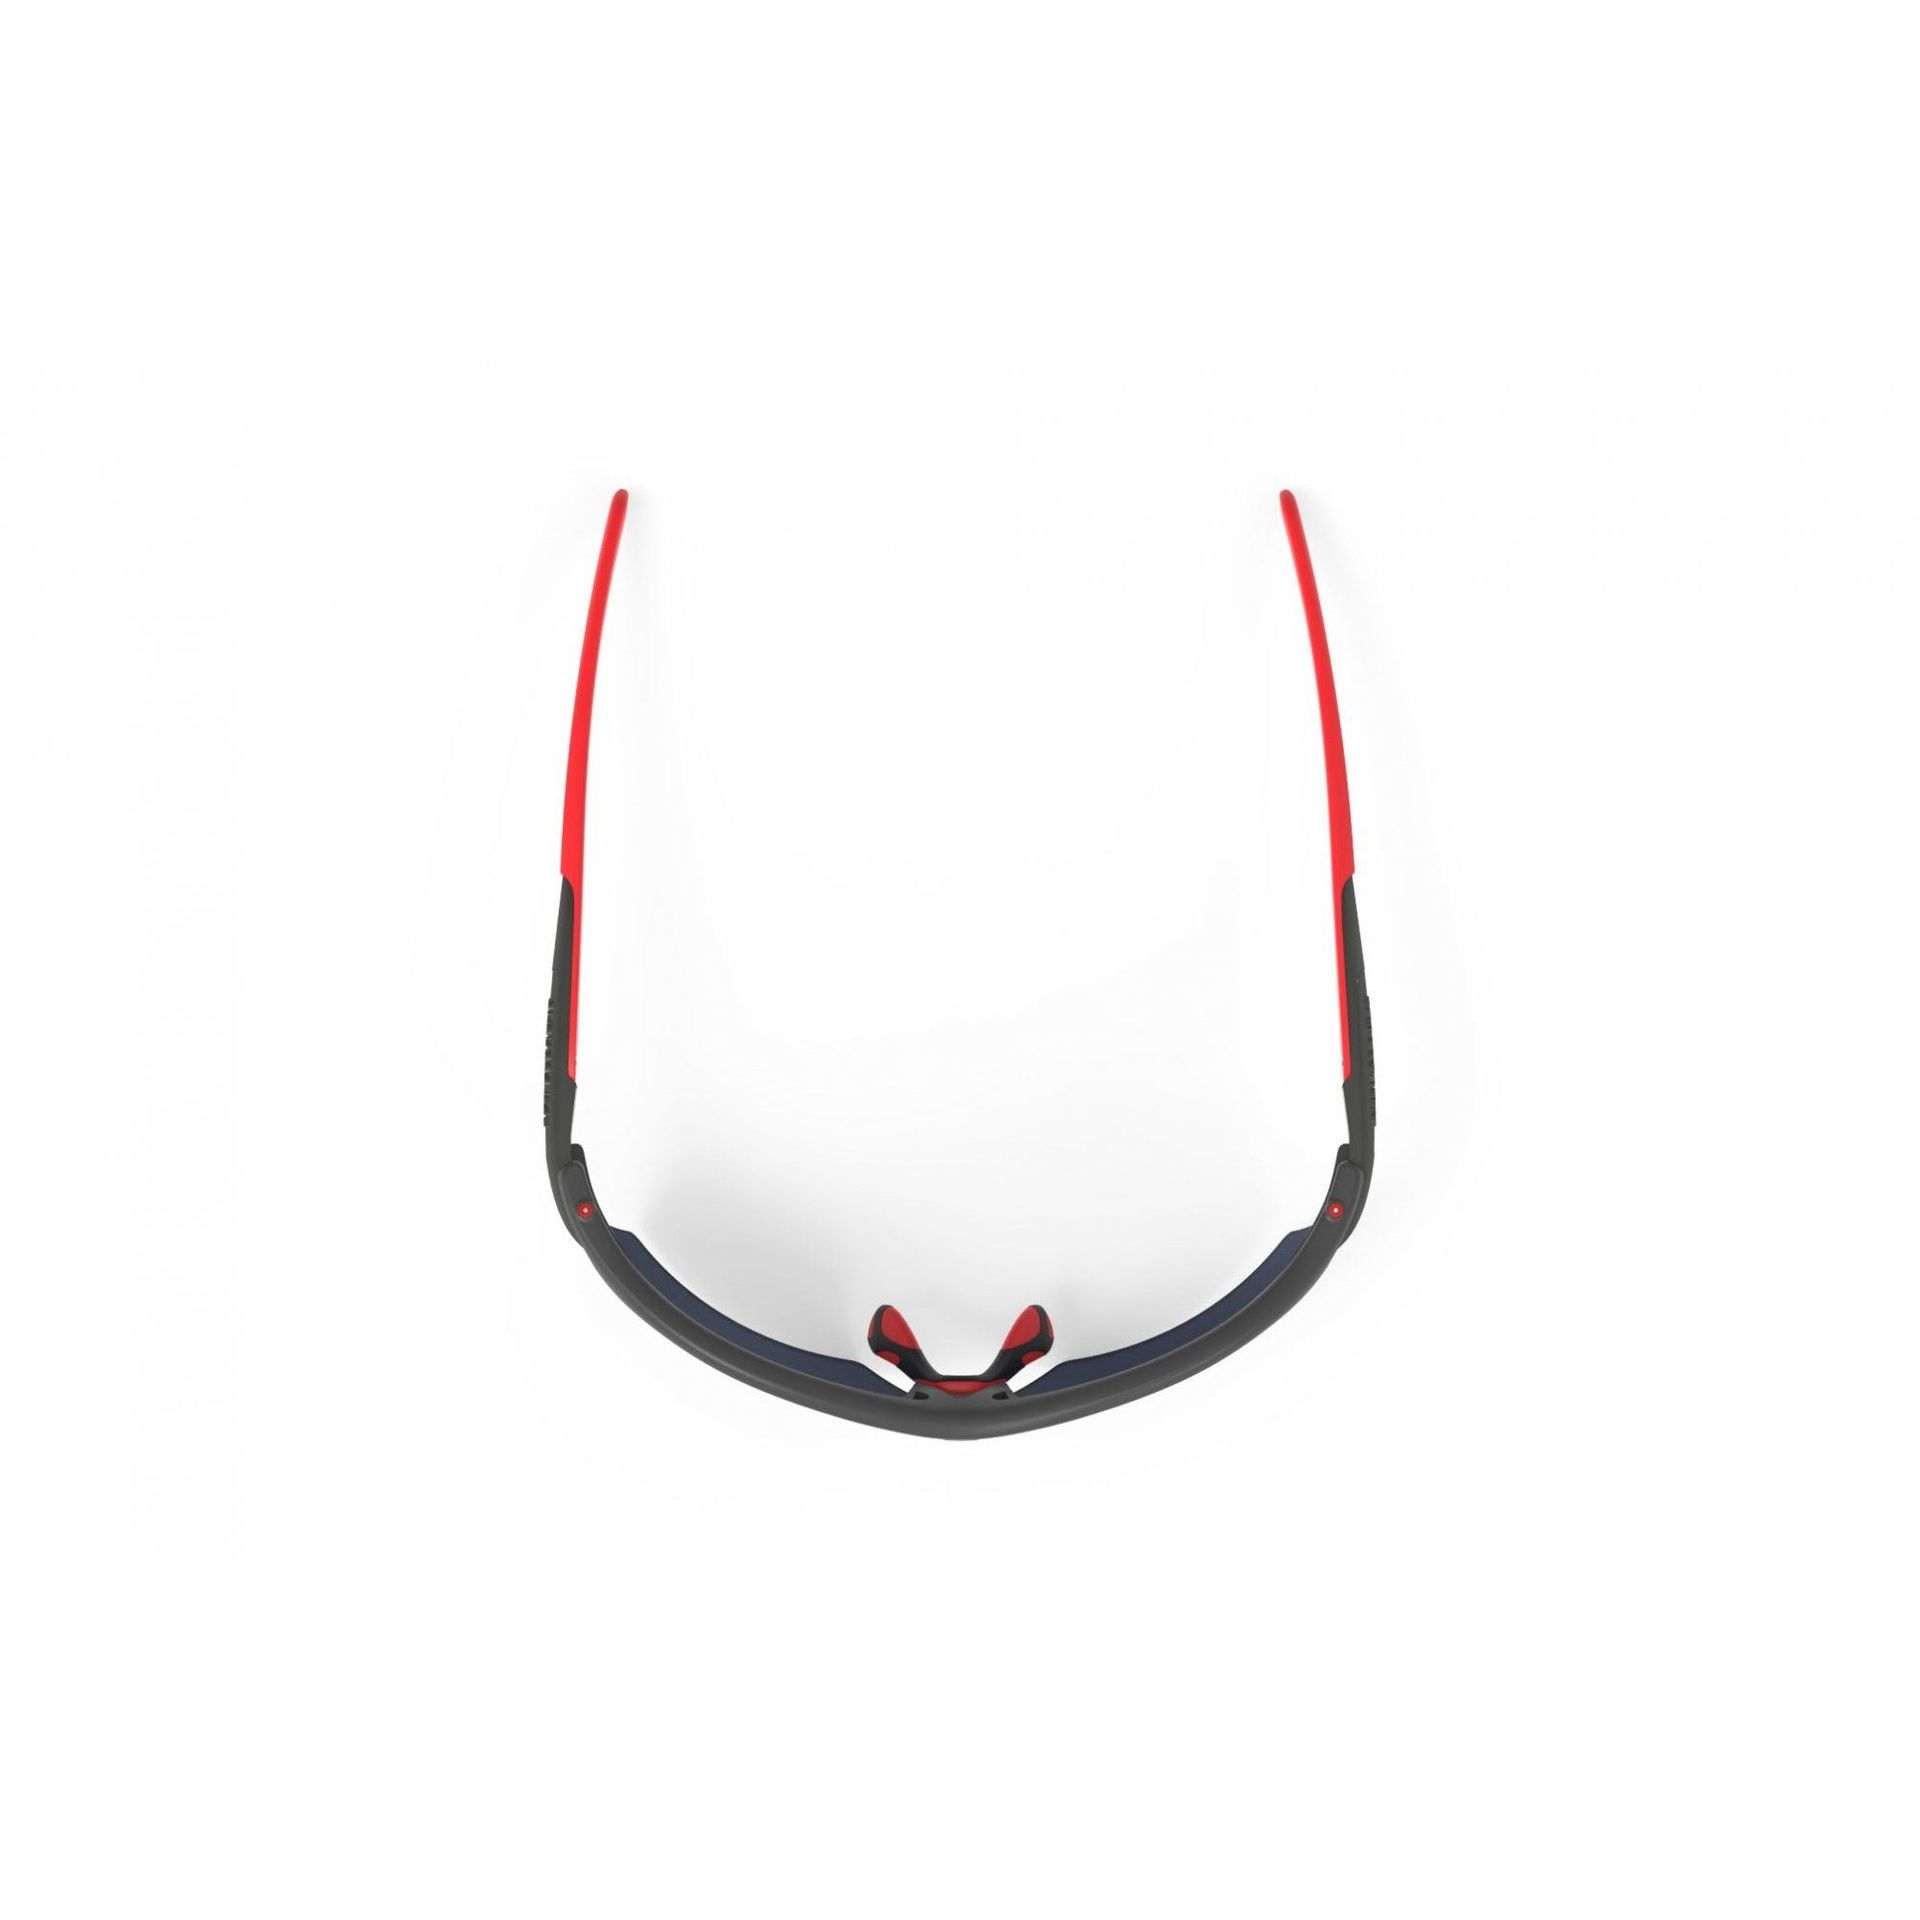 OKULARY RUDY PROJECT RYDON GRAPHITE|RED + ML RED SP533898 6